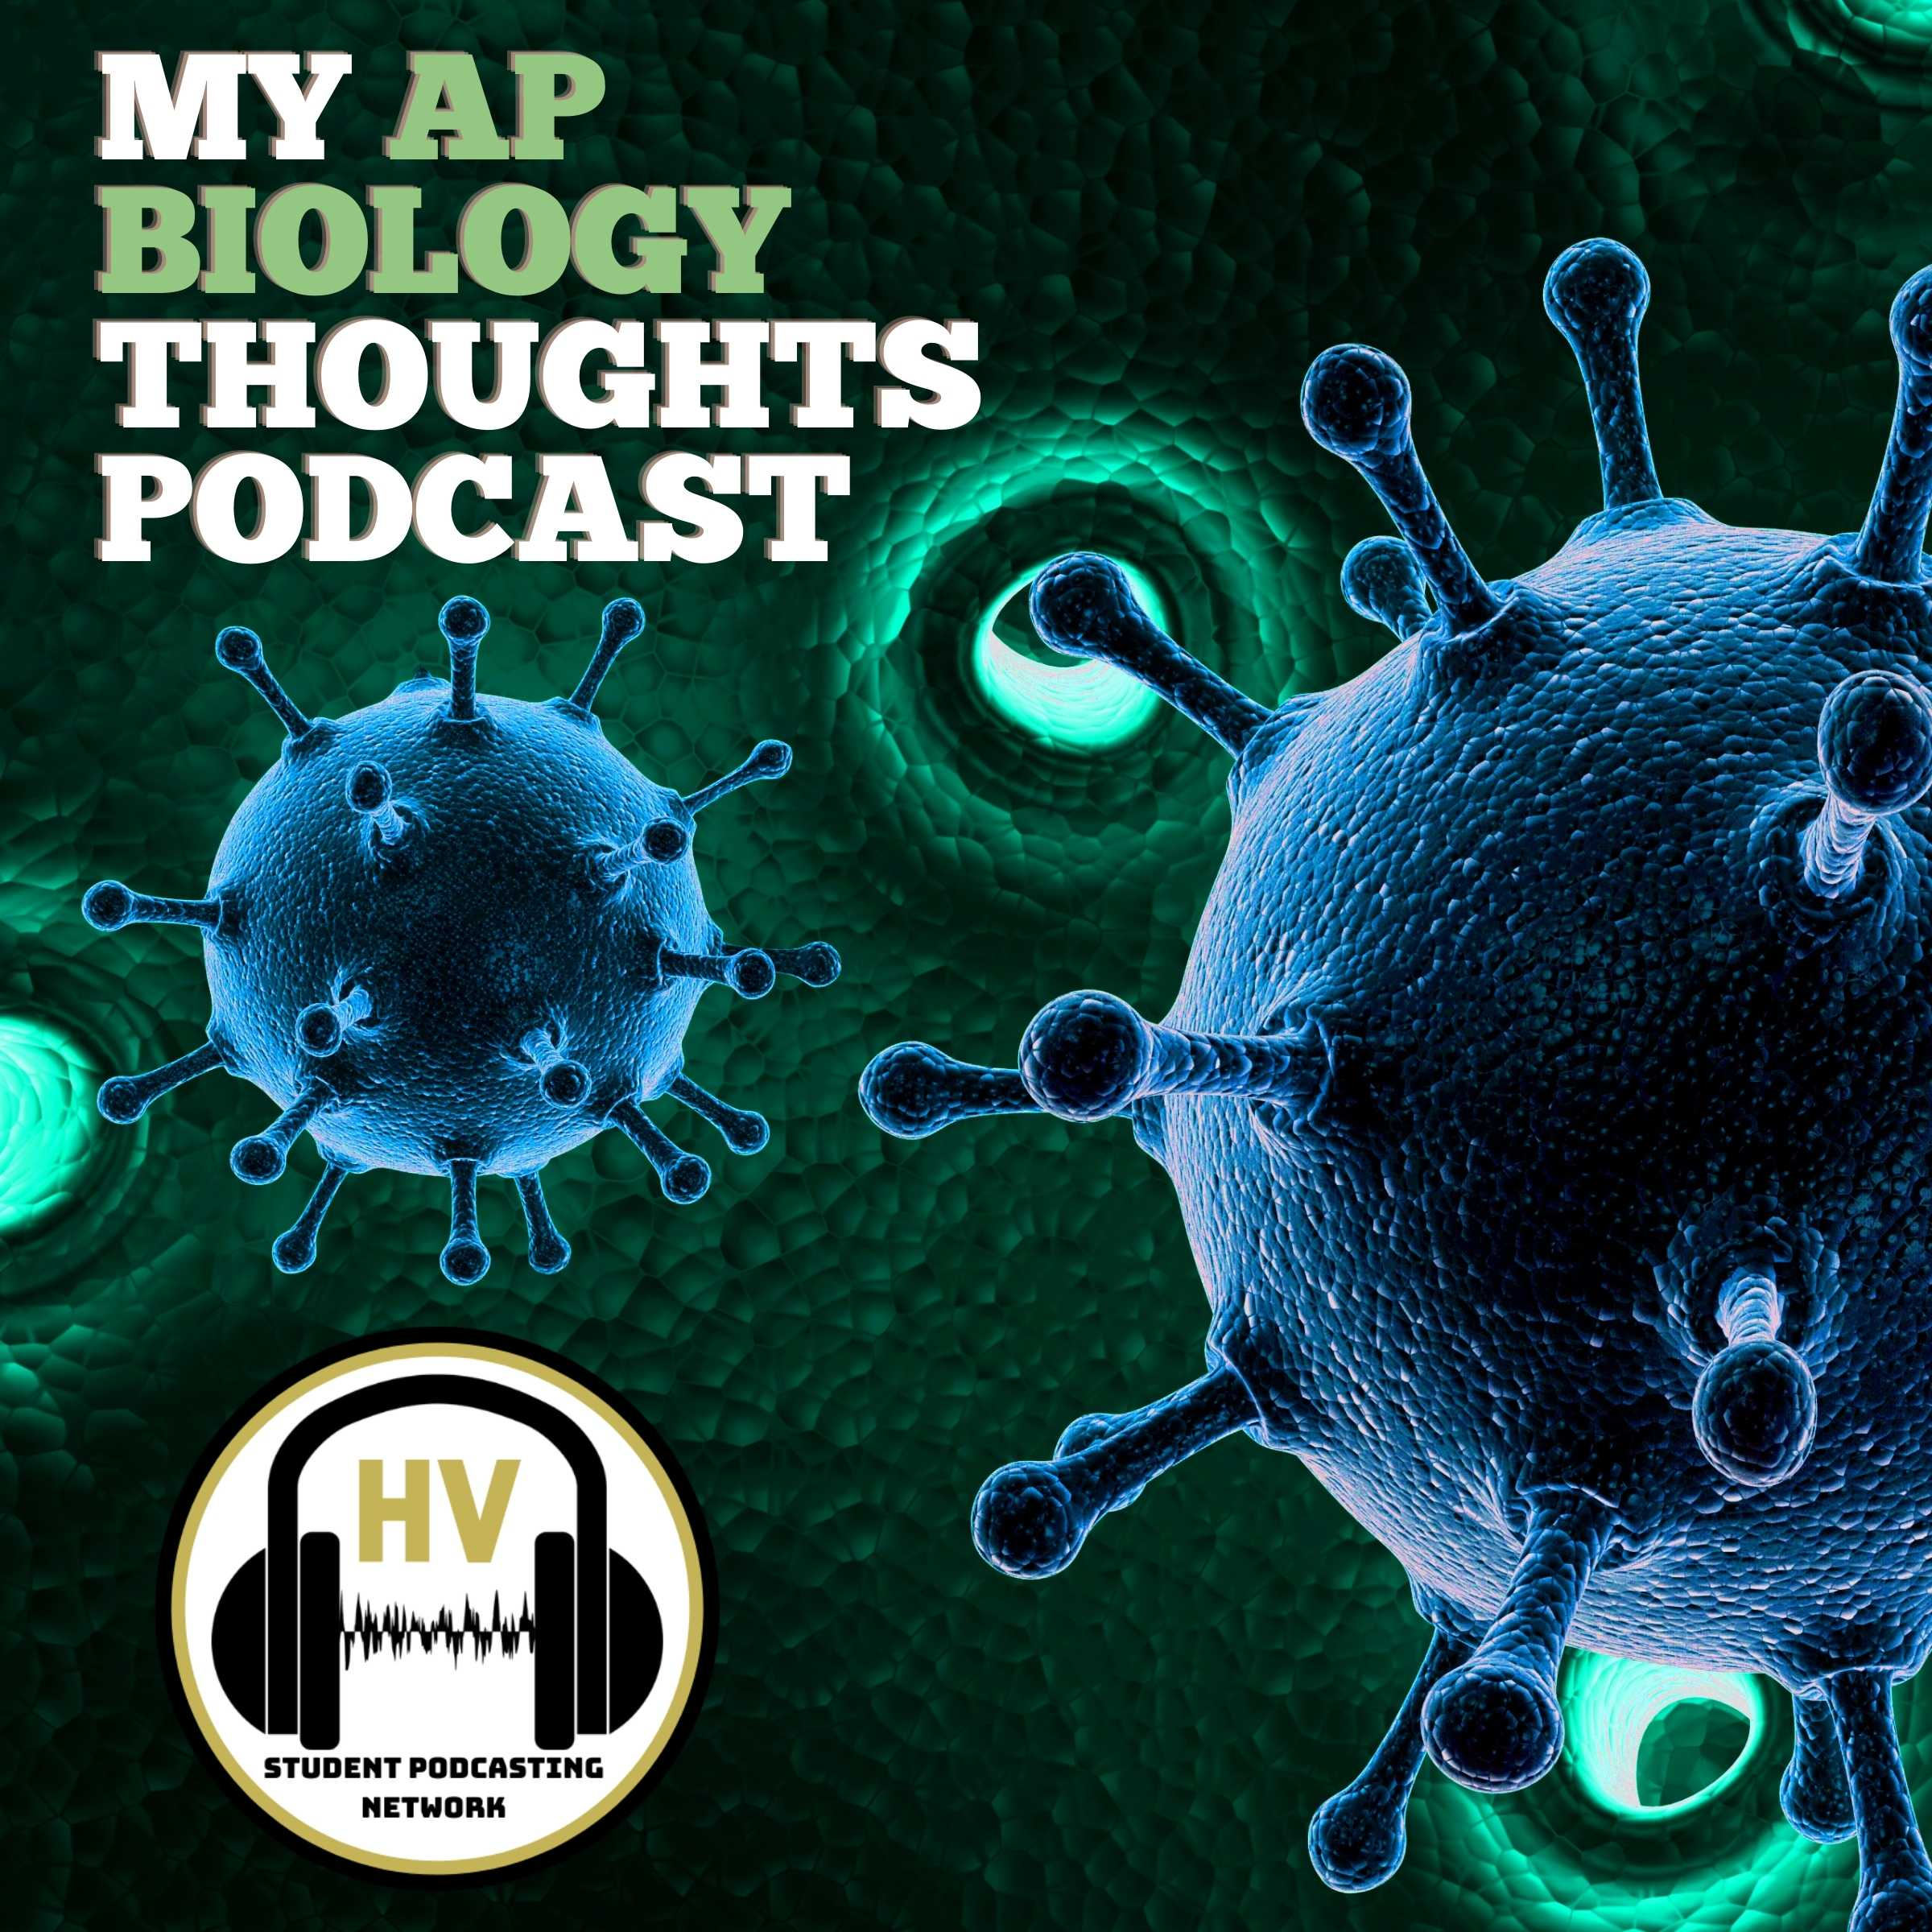 Artwork for podcast My AP Biology Thoughts